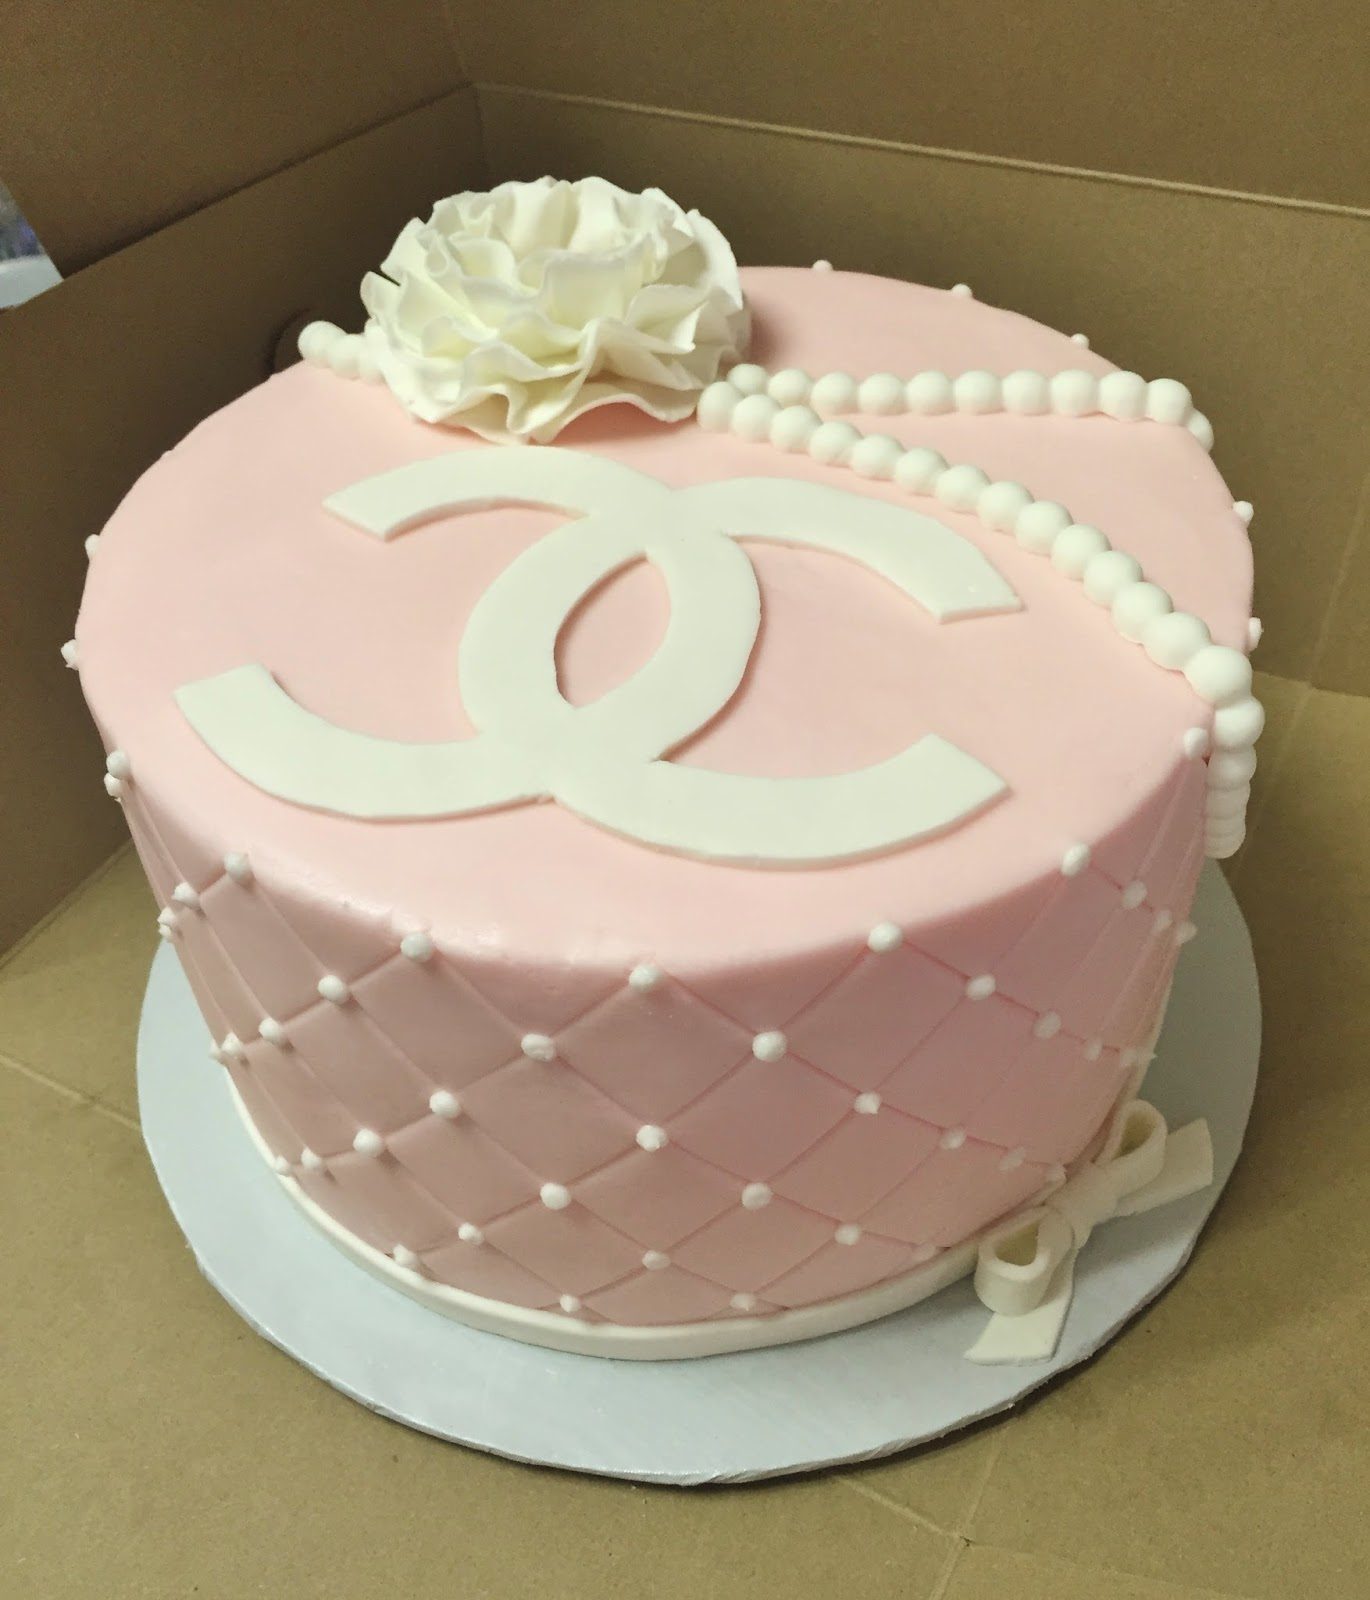 Cakes by Mindy Pink and White Chanel Cake 8""